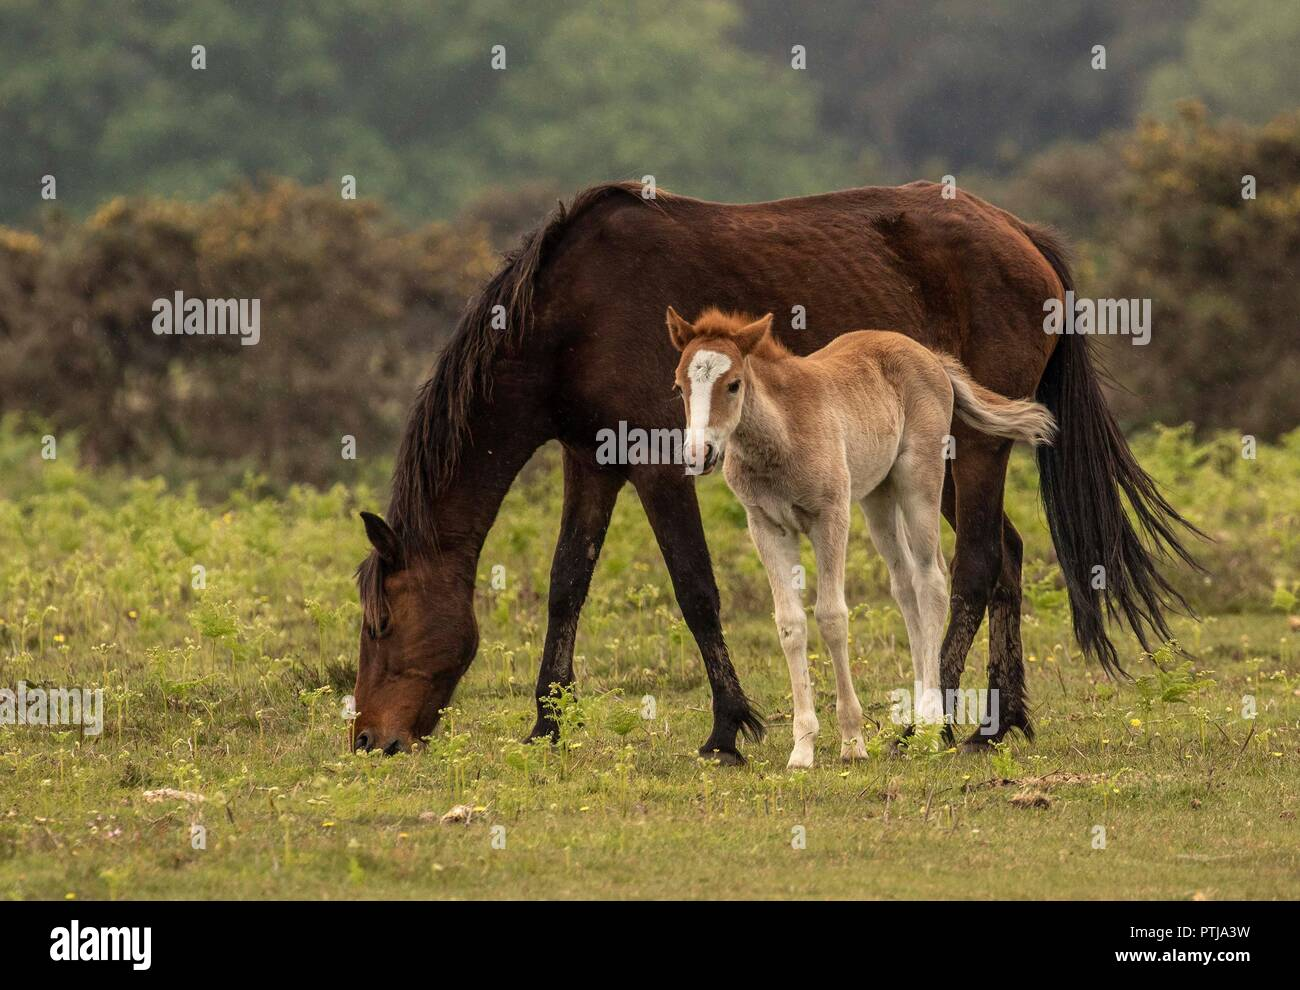 New Forest Pony foal - Stock Image